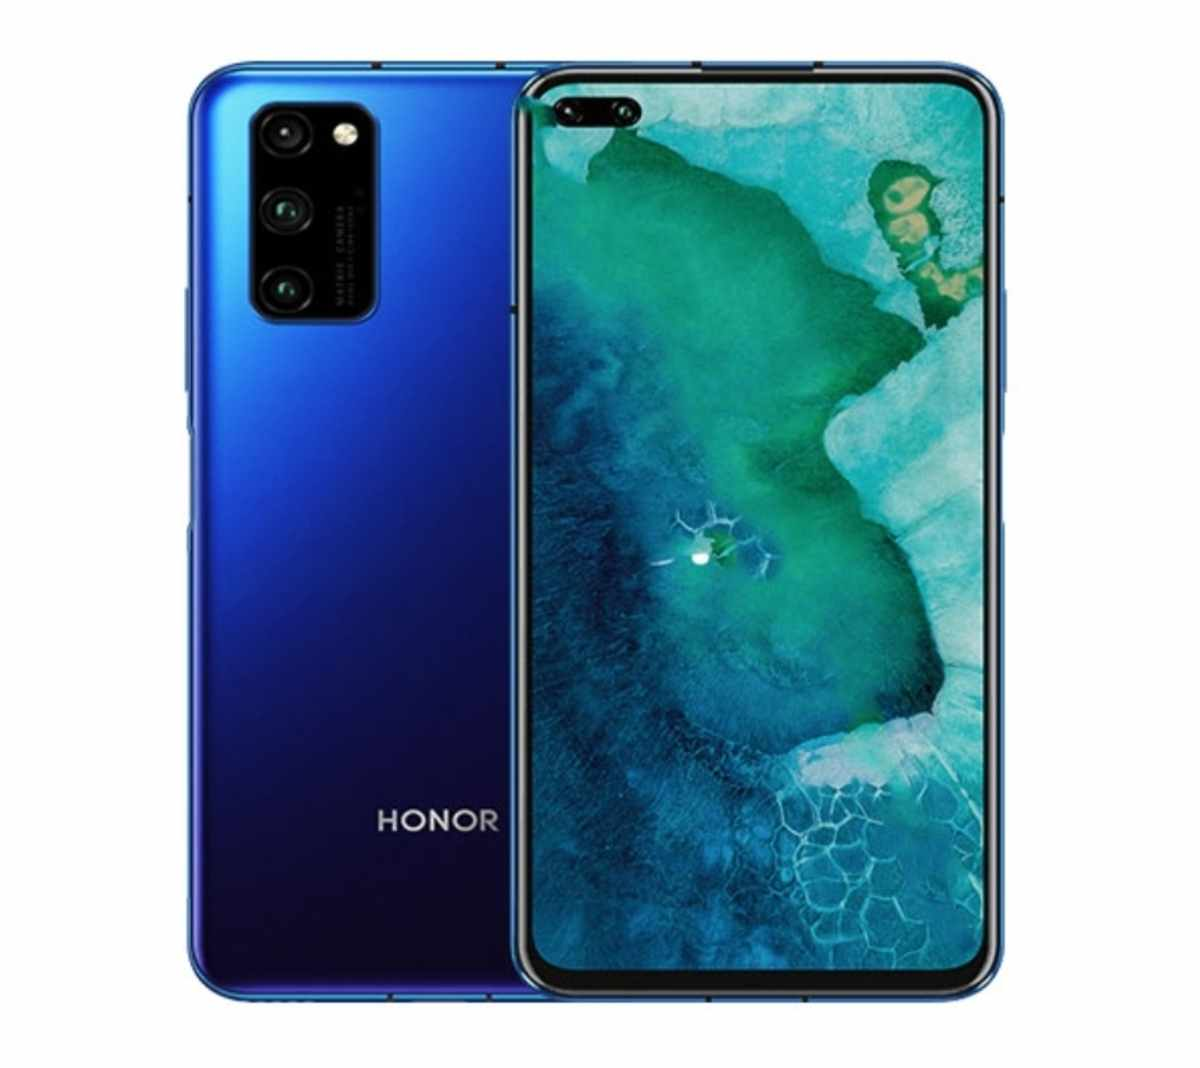 Honor View 30 Pro image, specs and price, Honor view 30 pro price in Nigeria